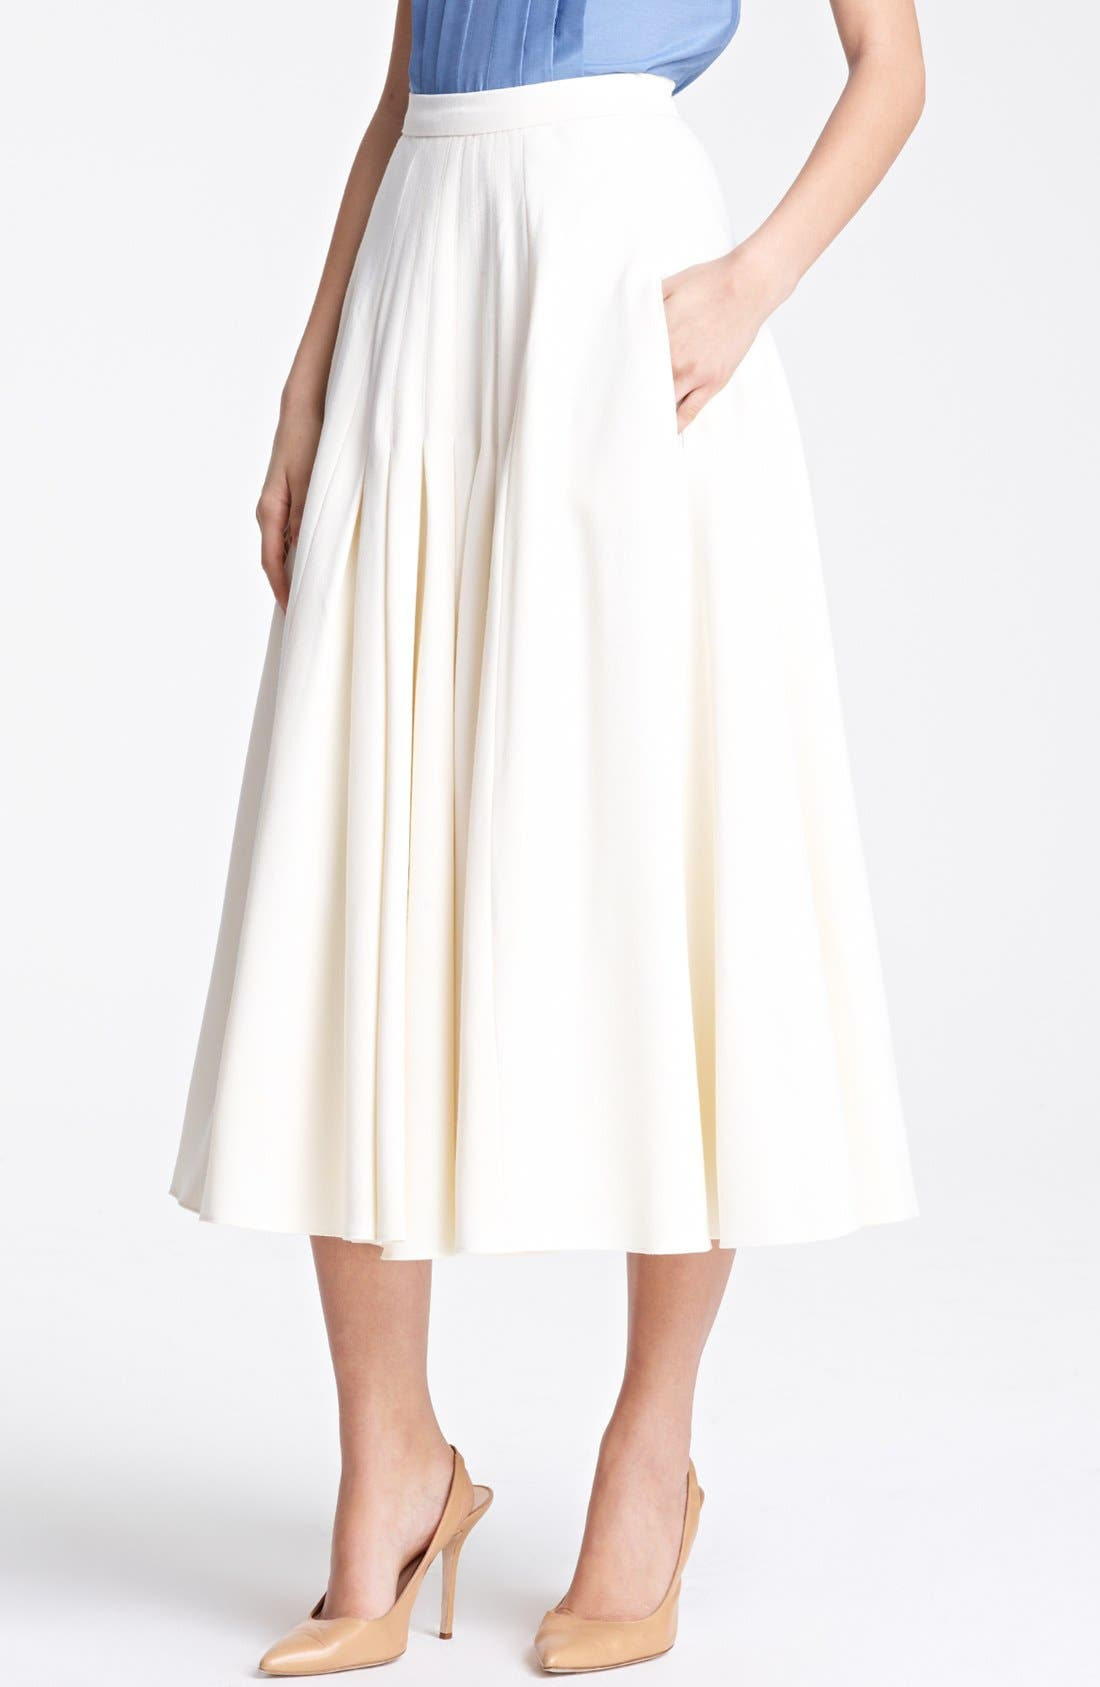 Alternate Image 1 Selected - Oscar de la Renta Pleated Jacquard Skirt